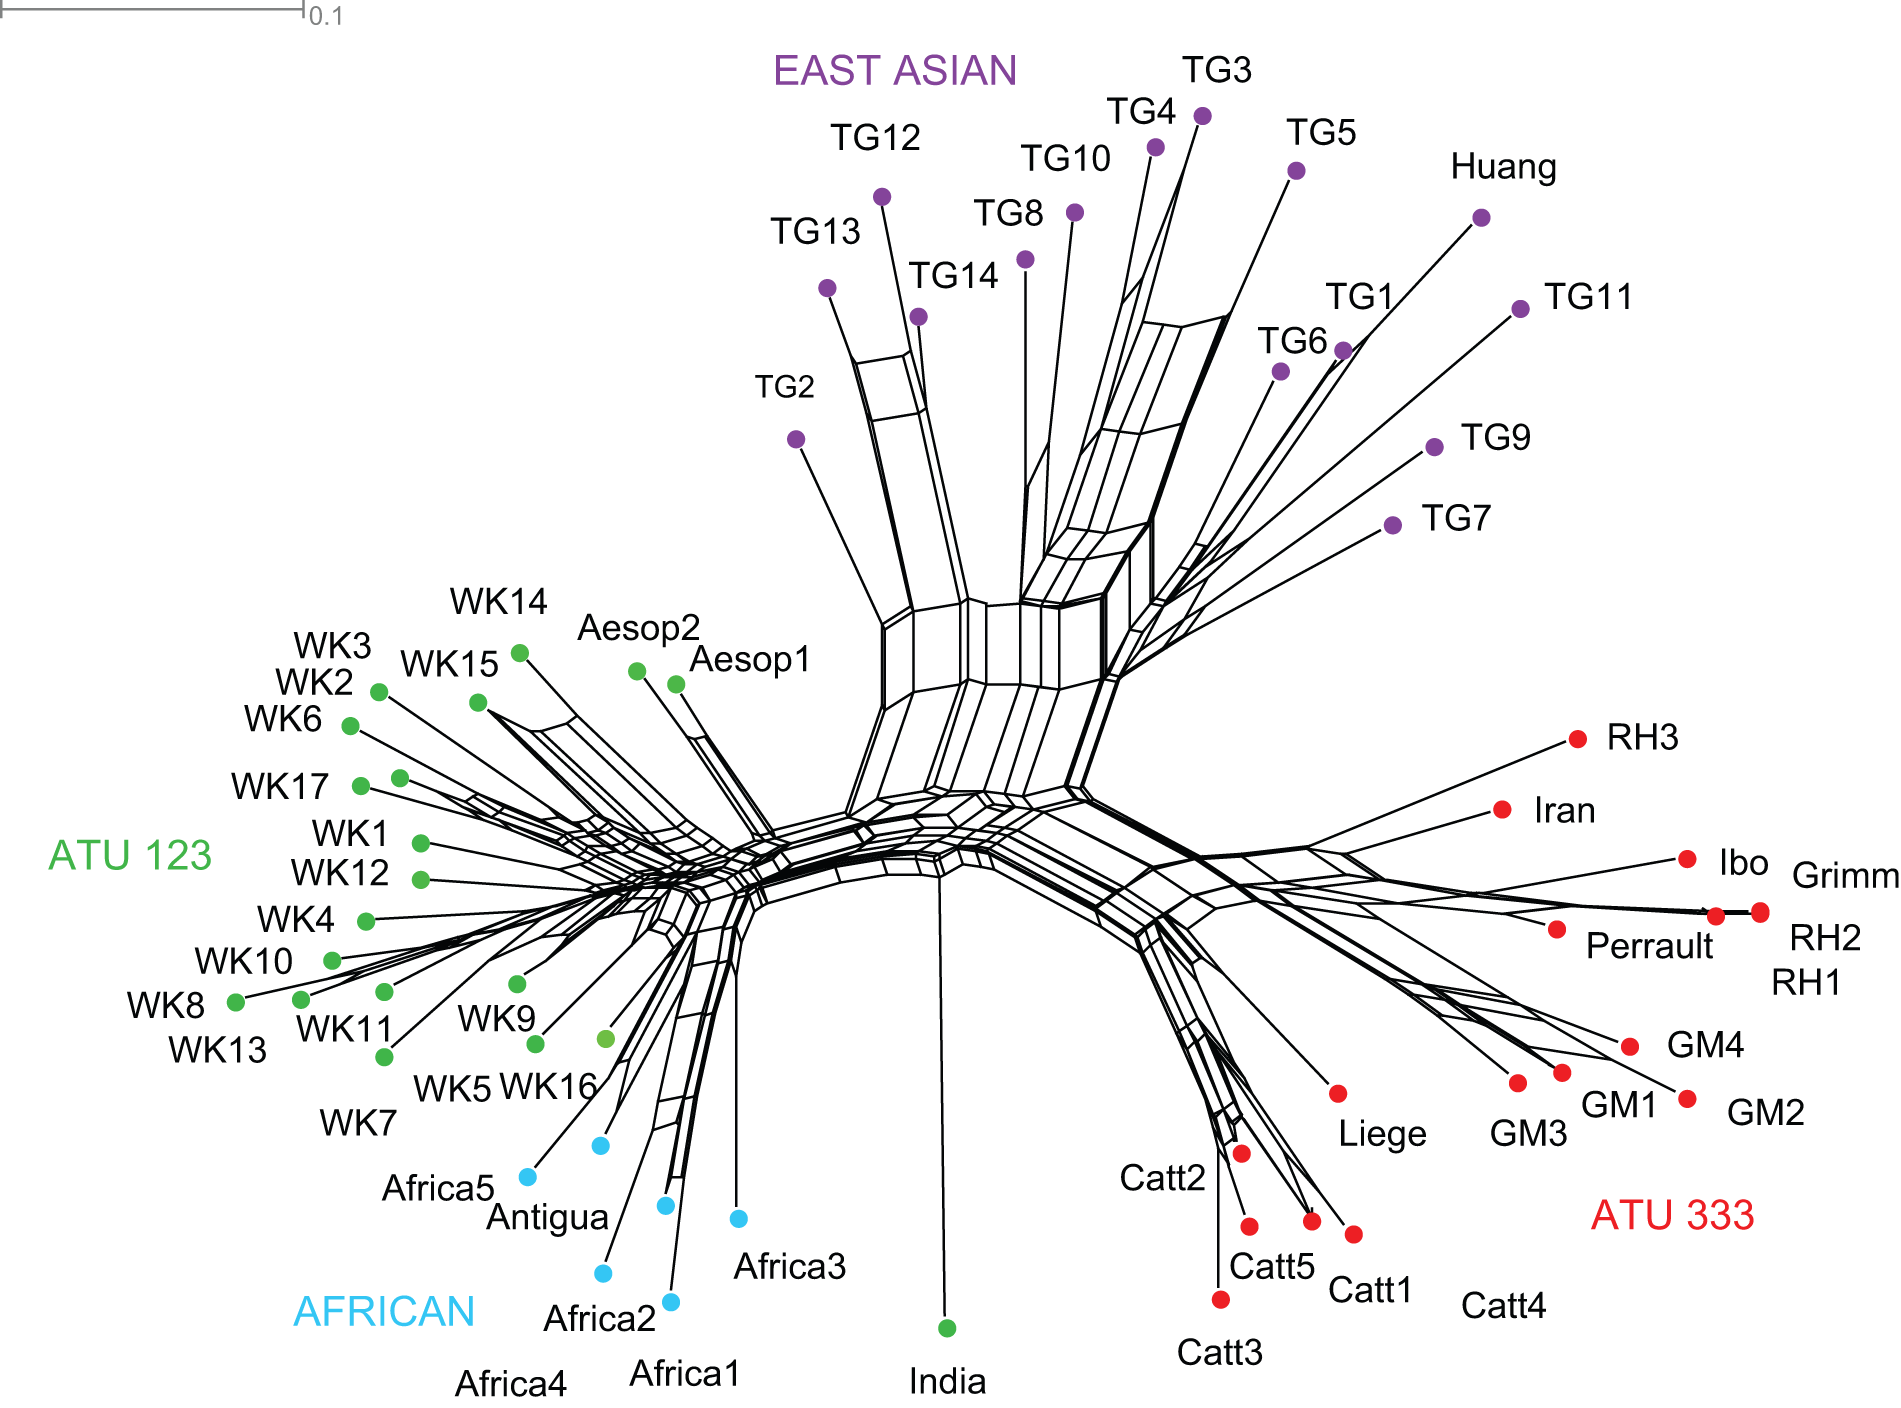 Phylogenetic network of Little Red Riding Hood (Tehrani 2013, fig. 4)